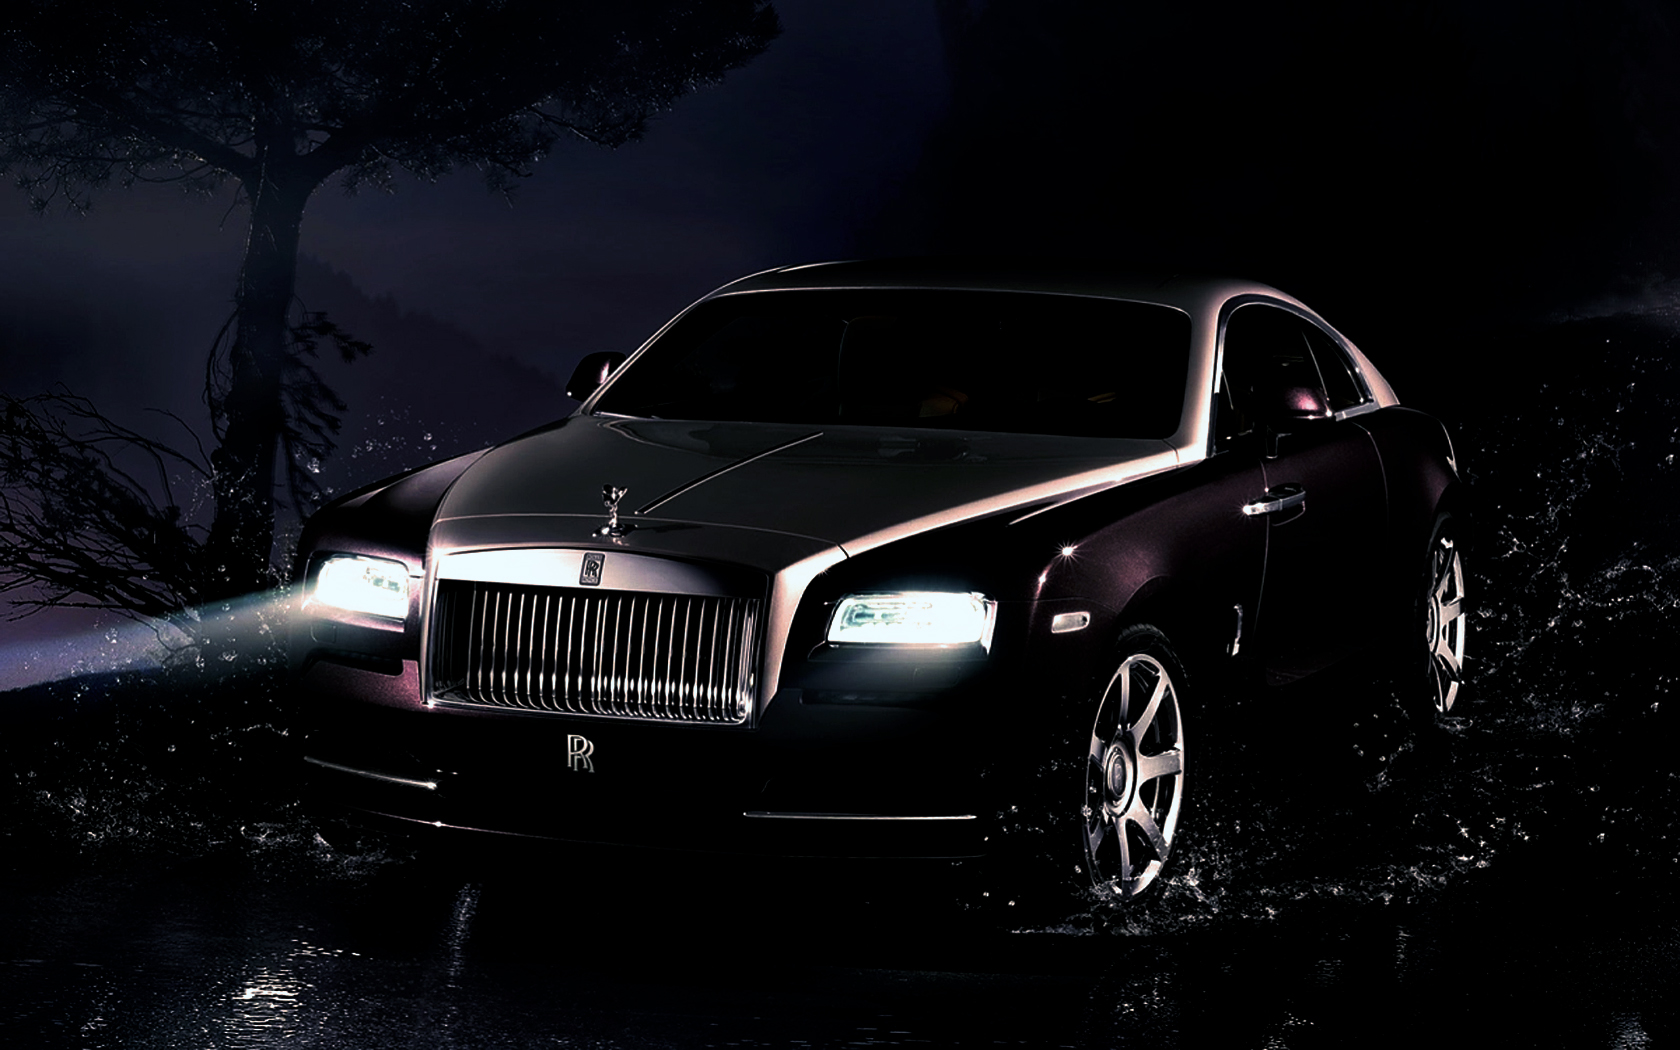 Muscle Cars Wallpapers 1080p Rolls Royce Wallpaper Image Picture 538 Wallpaper